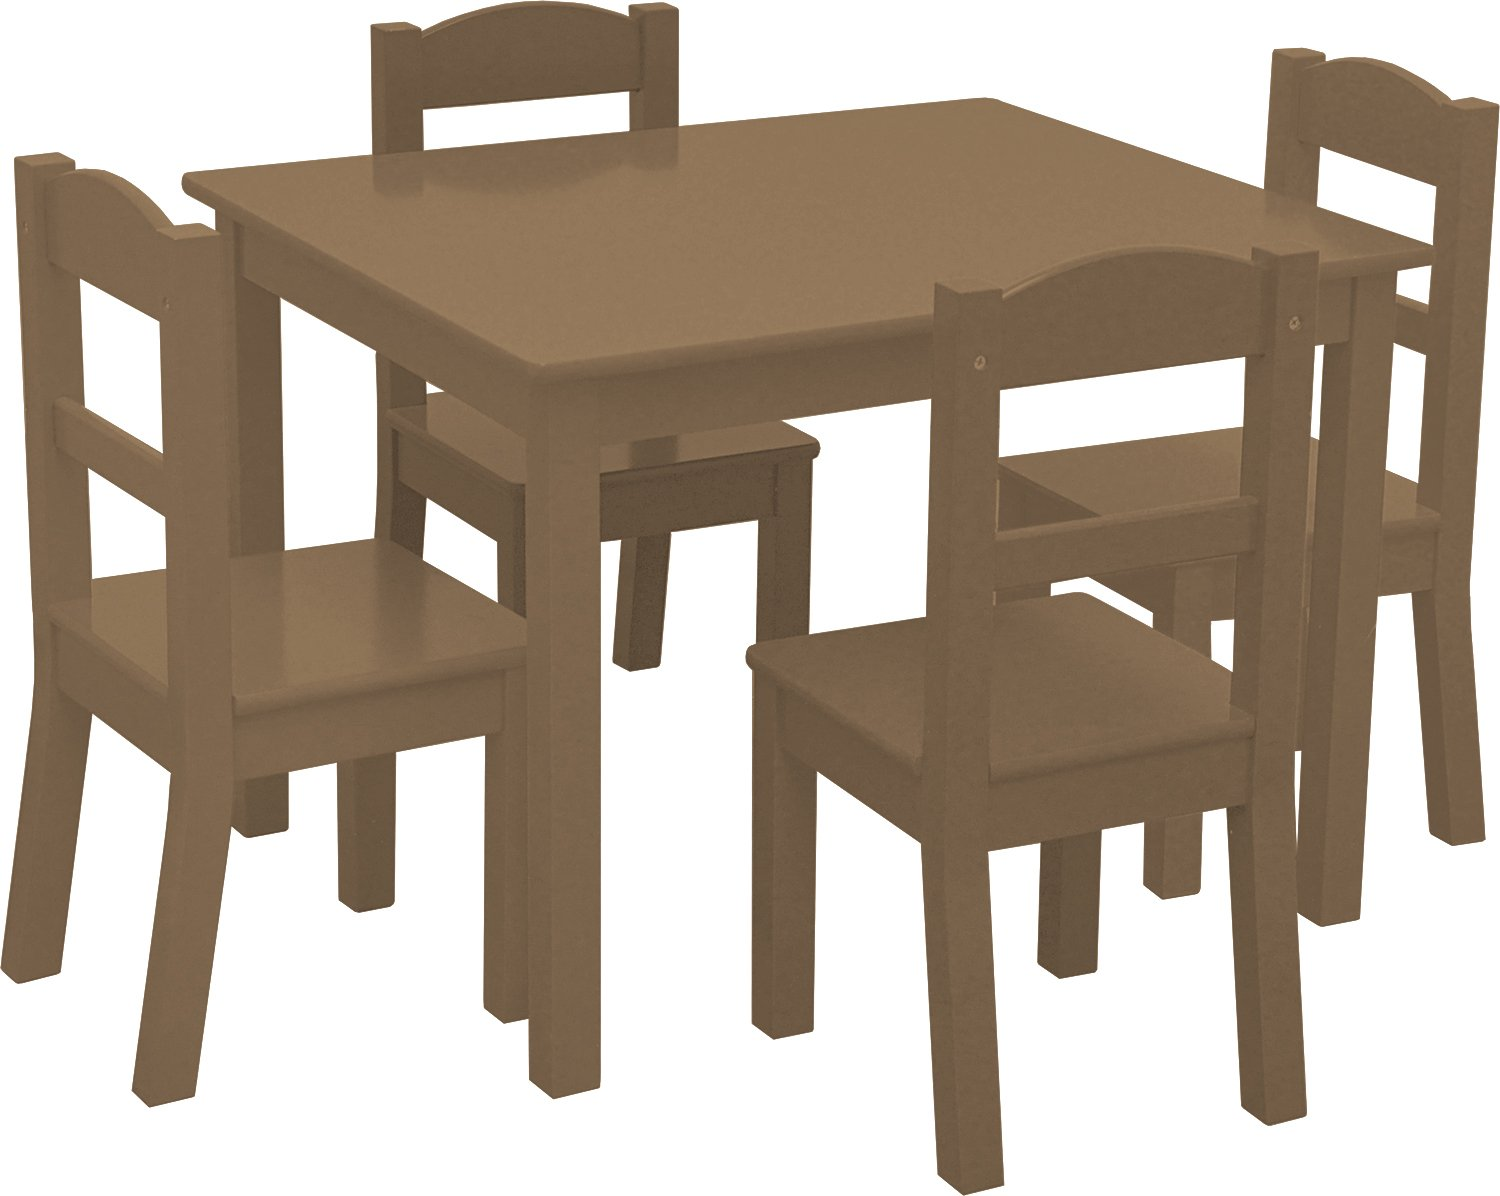 Heritage Kids Set, Brown, Table Dimensions: 26